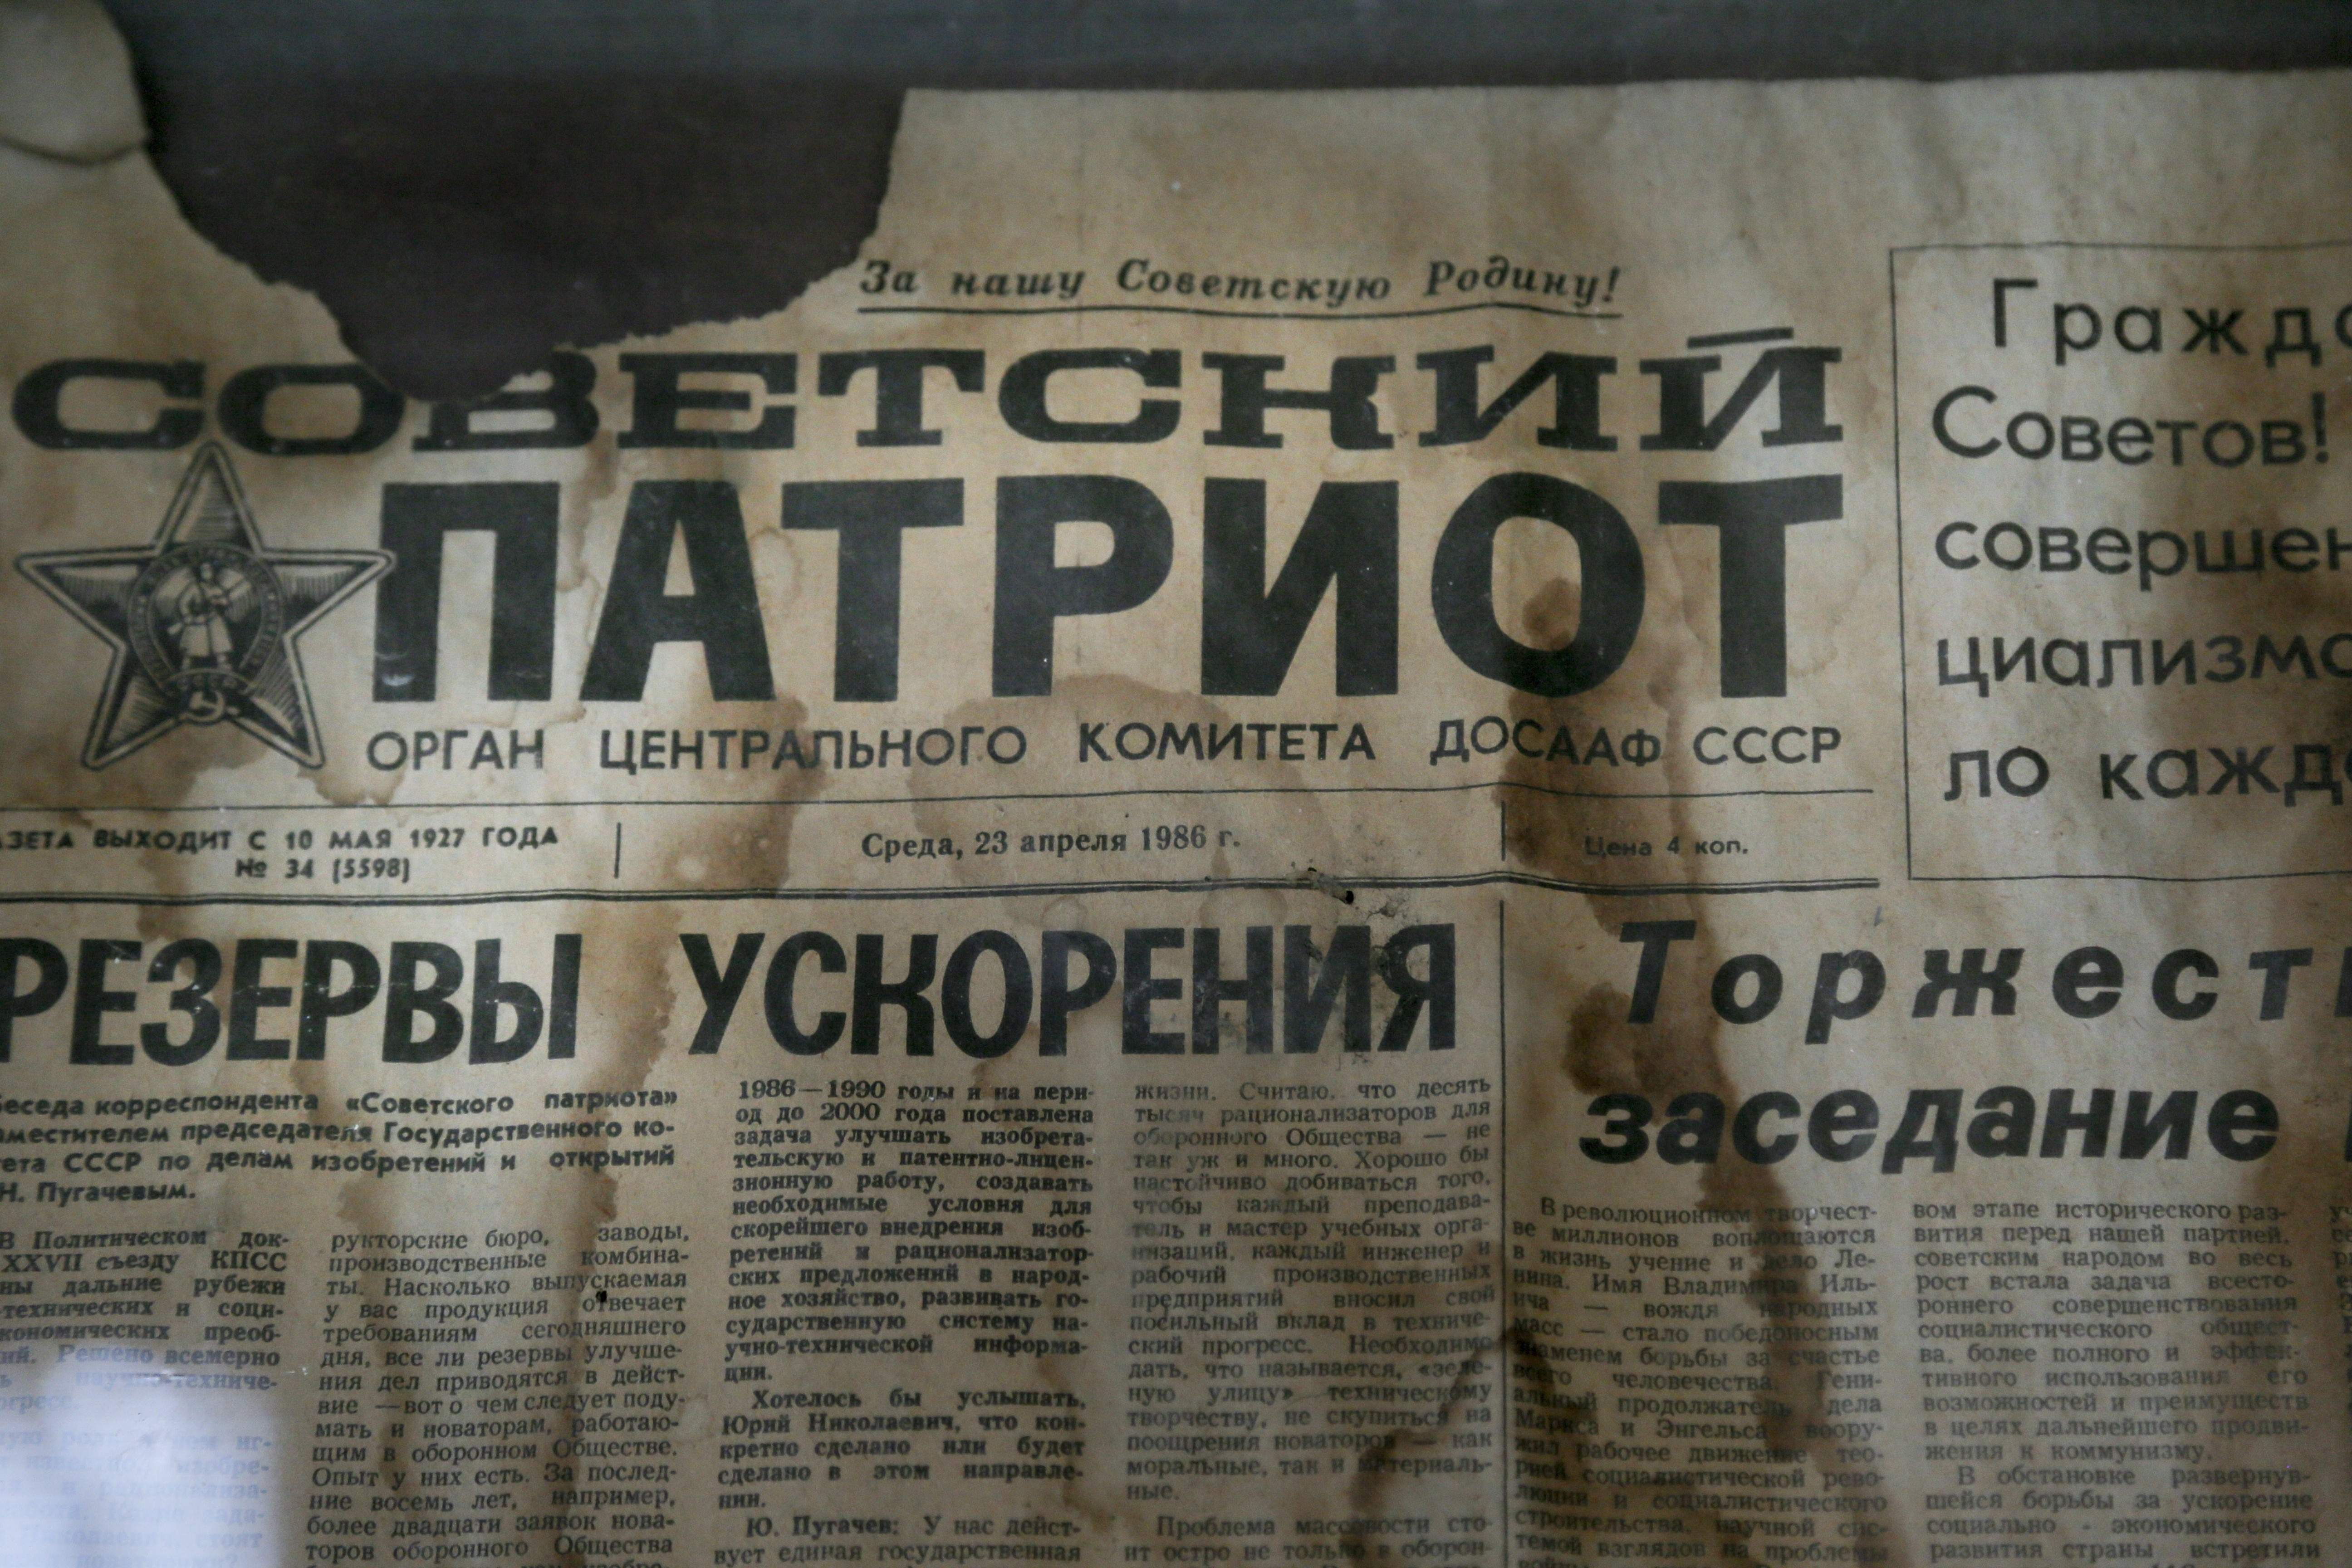 In this photo taken Wednesday, April 5, 2017, an edition of the newspaper Sovetsky Patriot, dated three days before the nuclear explosion, is attached to a bulletin board in a house of culture in the deserted town of Pripyat, some 3 kilometers (1.86 miles) from the Chernobyl nuclear power plant Ukraine. Once home to some 50,000 people whose lives were connected to the Chernobyl nuclear power plant, Pripyat was hastily evacuated one day after a reactor at the plant 3 kilometers (2 miles away) exploded on April 26, 1986. The explosion and the subsequent fire spewed a radioactive plume over much of northern Europe. THE ASSOCIATED PRESS